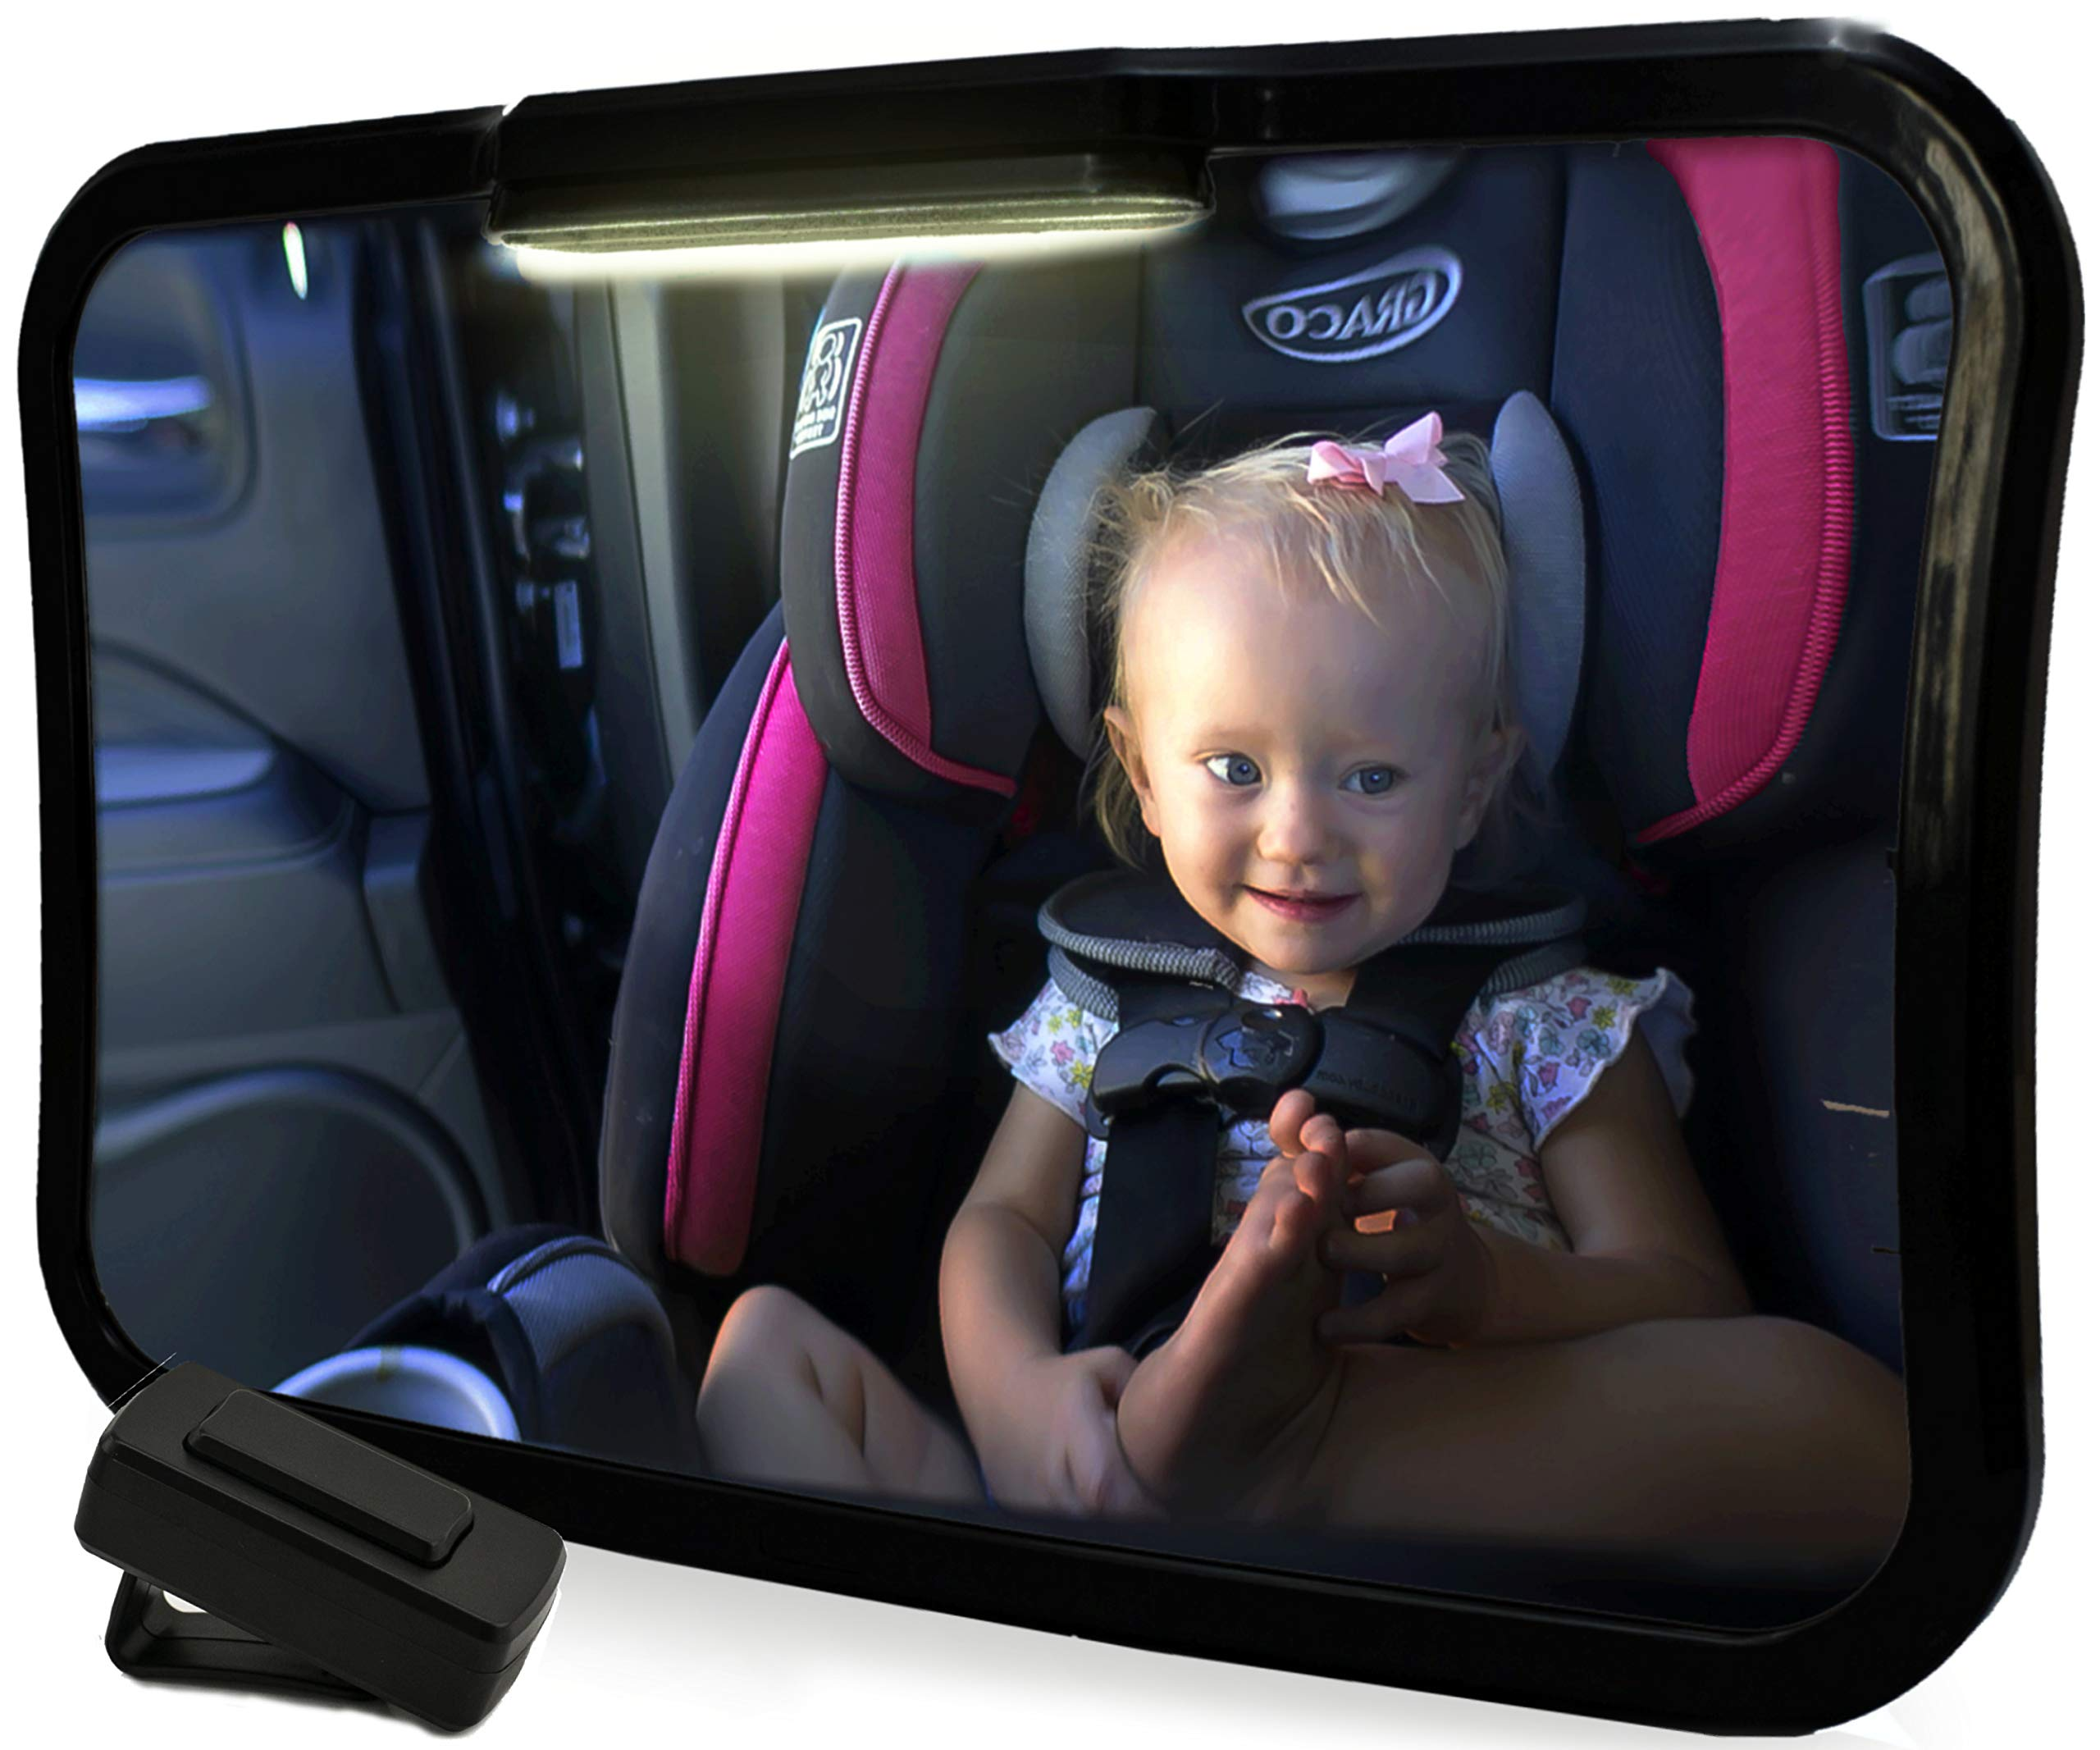 Baby Travel Backseat Mirror with Light | Large Rear Facing Mirror for Infant Carseat | FREE Window Sunshades | Wide View Angle with 360-Degree Pivot | Remote-Activated Light System| Shatterproof Glass by KiddKare